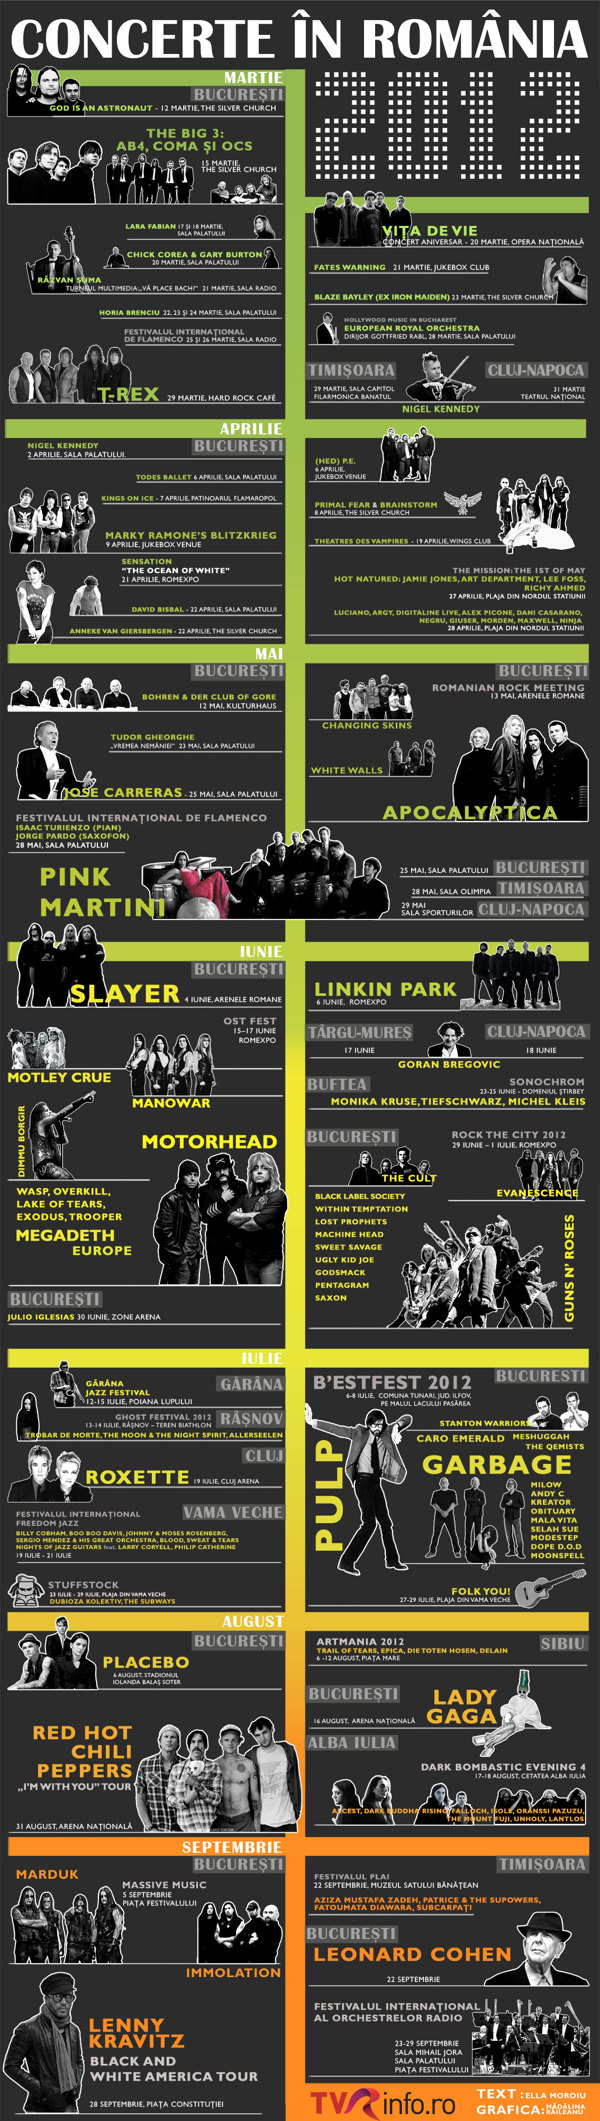 Concerts in Romania 2012, by Madalina Raileanu   | Visit our new infographic gallery at http://visualoop.com/